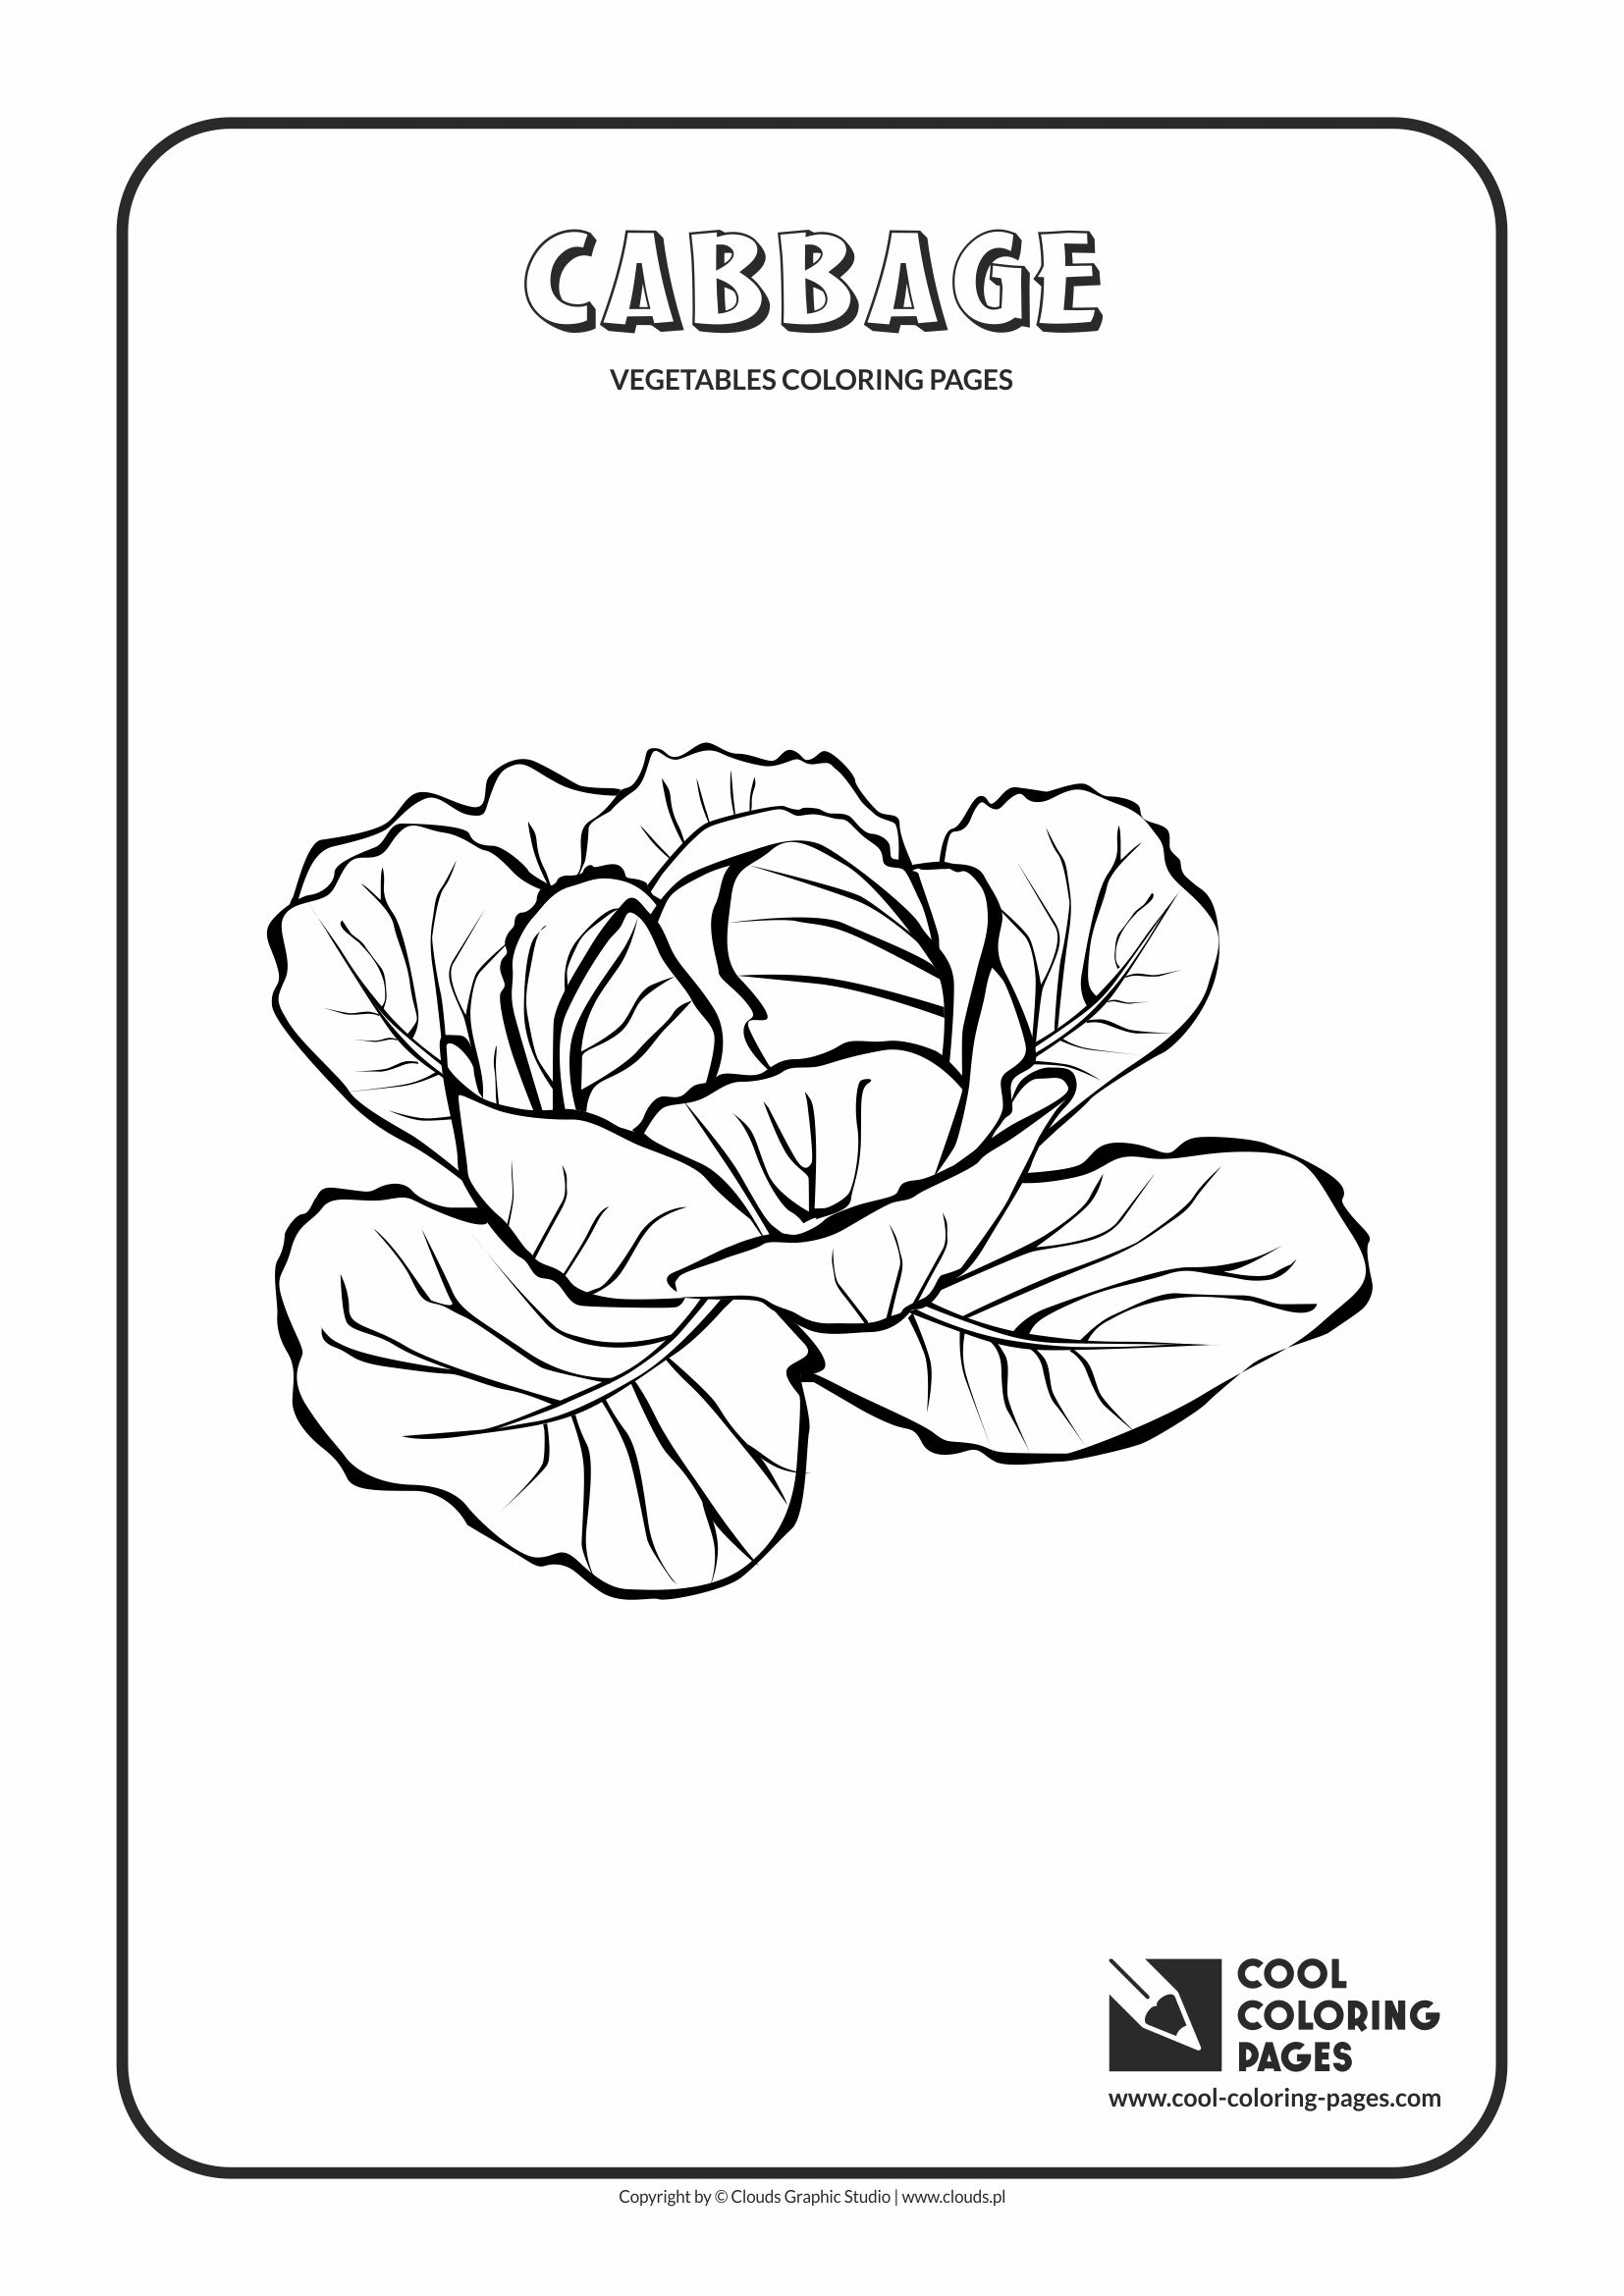 Cabbage Coloring Page Cool Coloring Pages